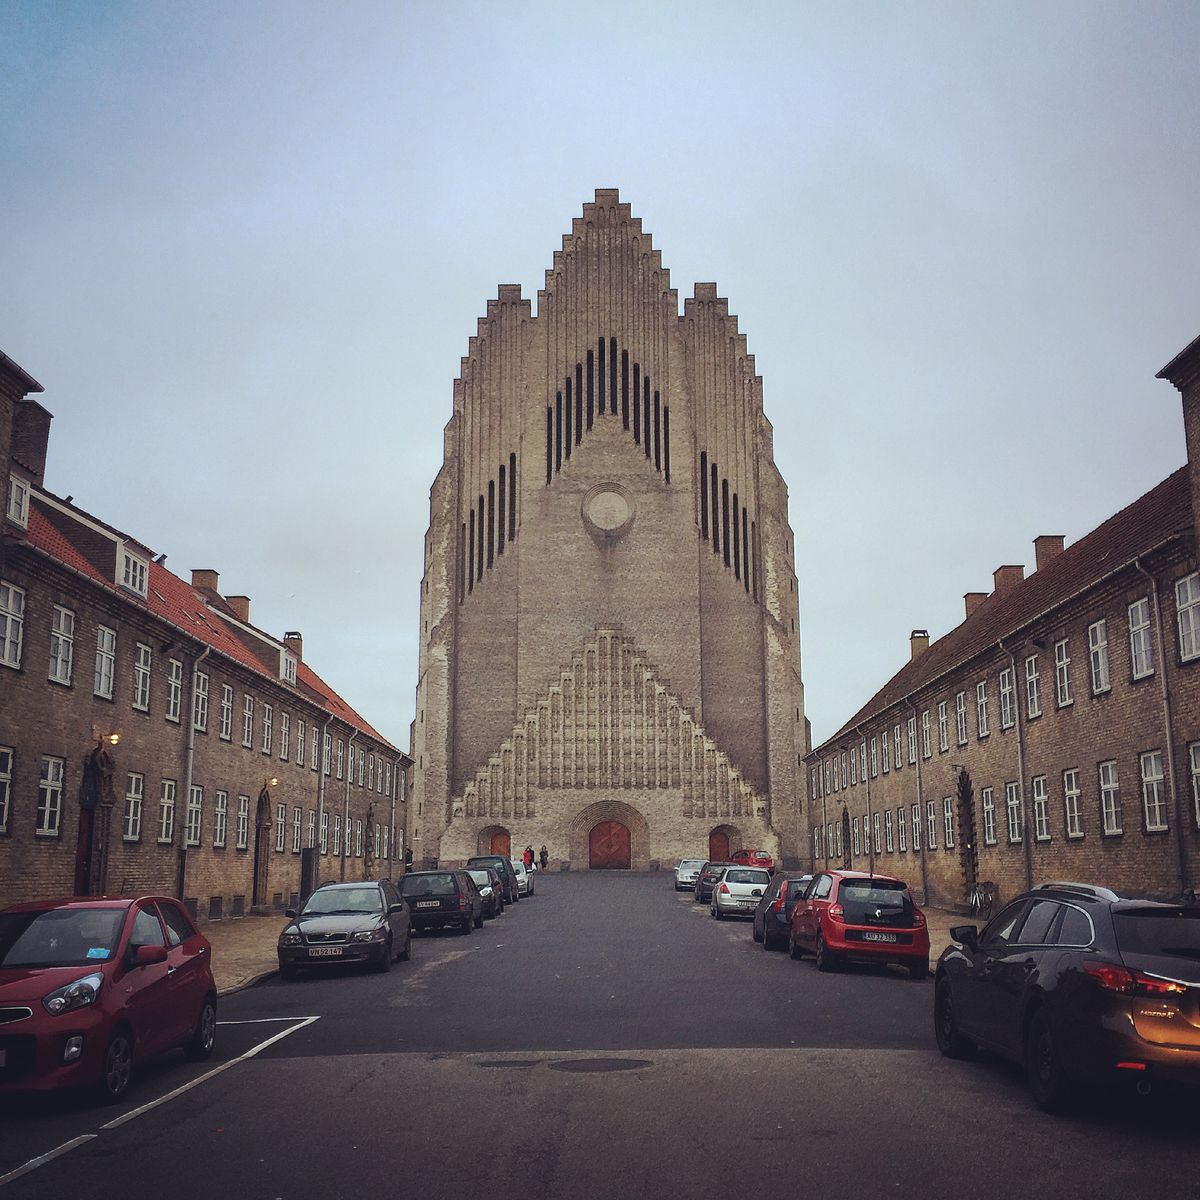 """The exterior of <span data-author=""""843"""">Grundtvig's Church in Denmark, The facade resembles a church organ and is comprised of tan brick. There are attached houses leading up to the church on a street in the foreground.</span>"""